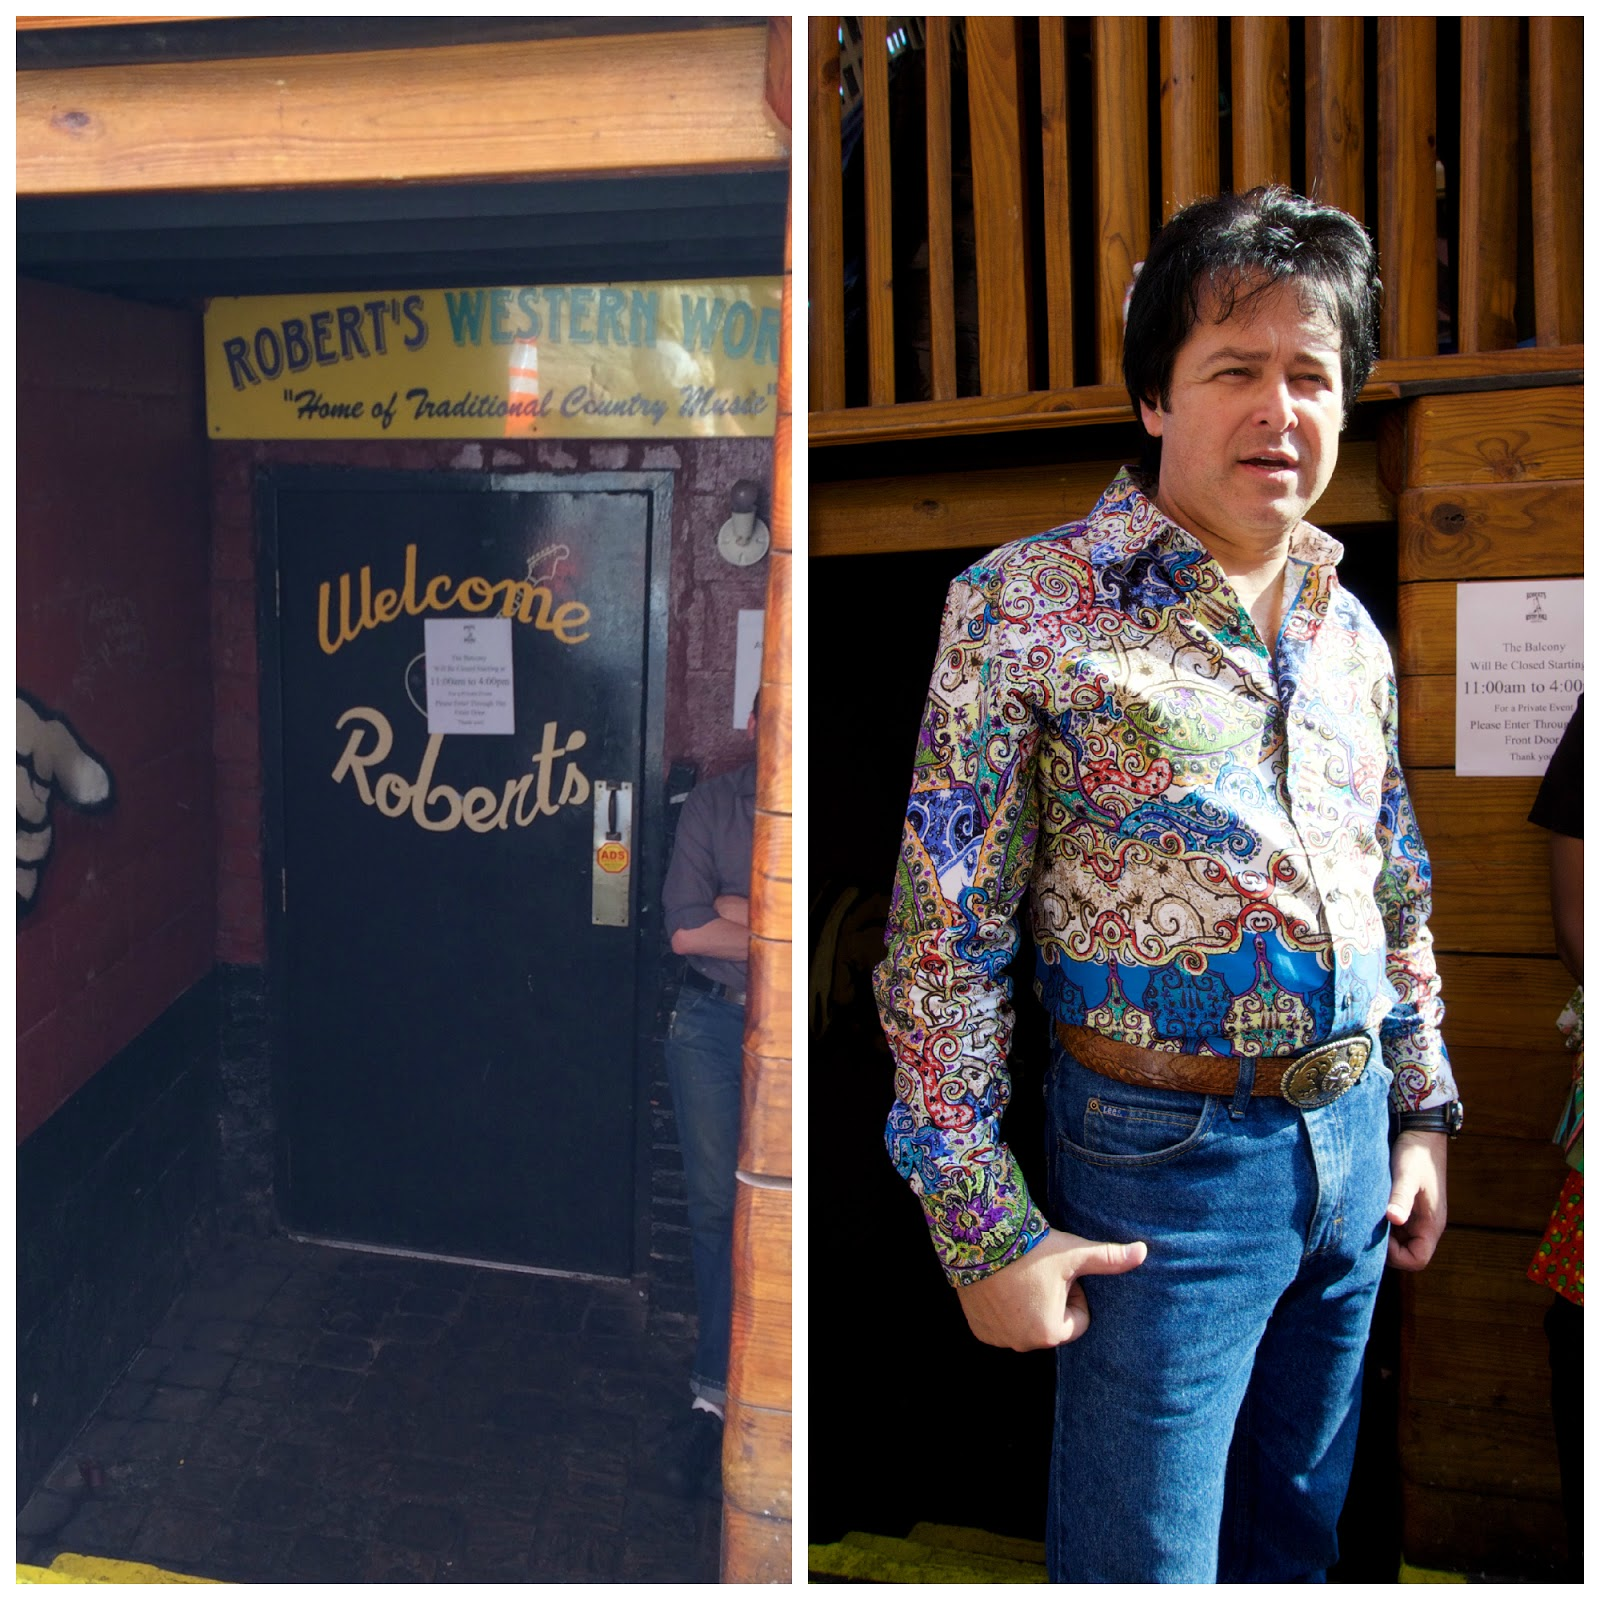 Robert's Western World -  Nashville